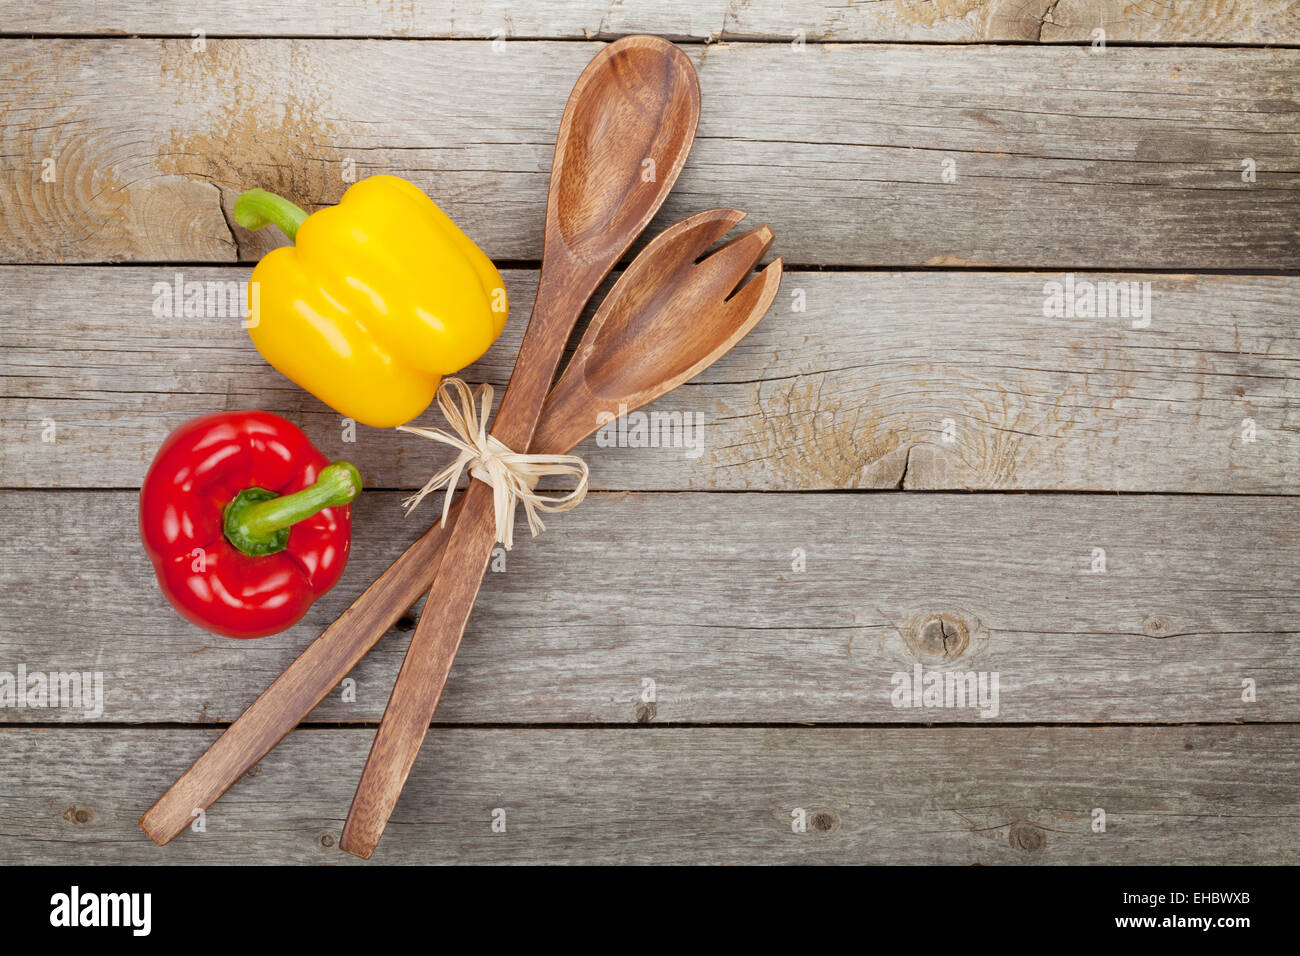 Colorful bell peppers and kitchen utensils over wooden table background with copy space - Stock Image